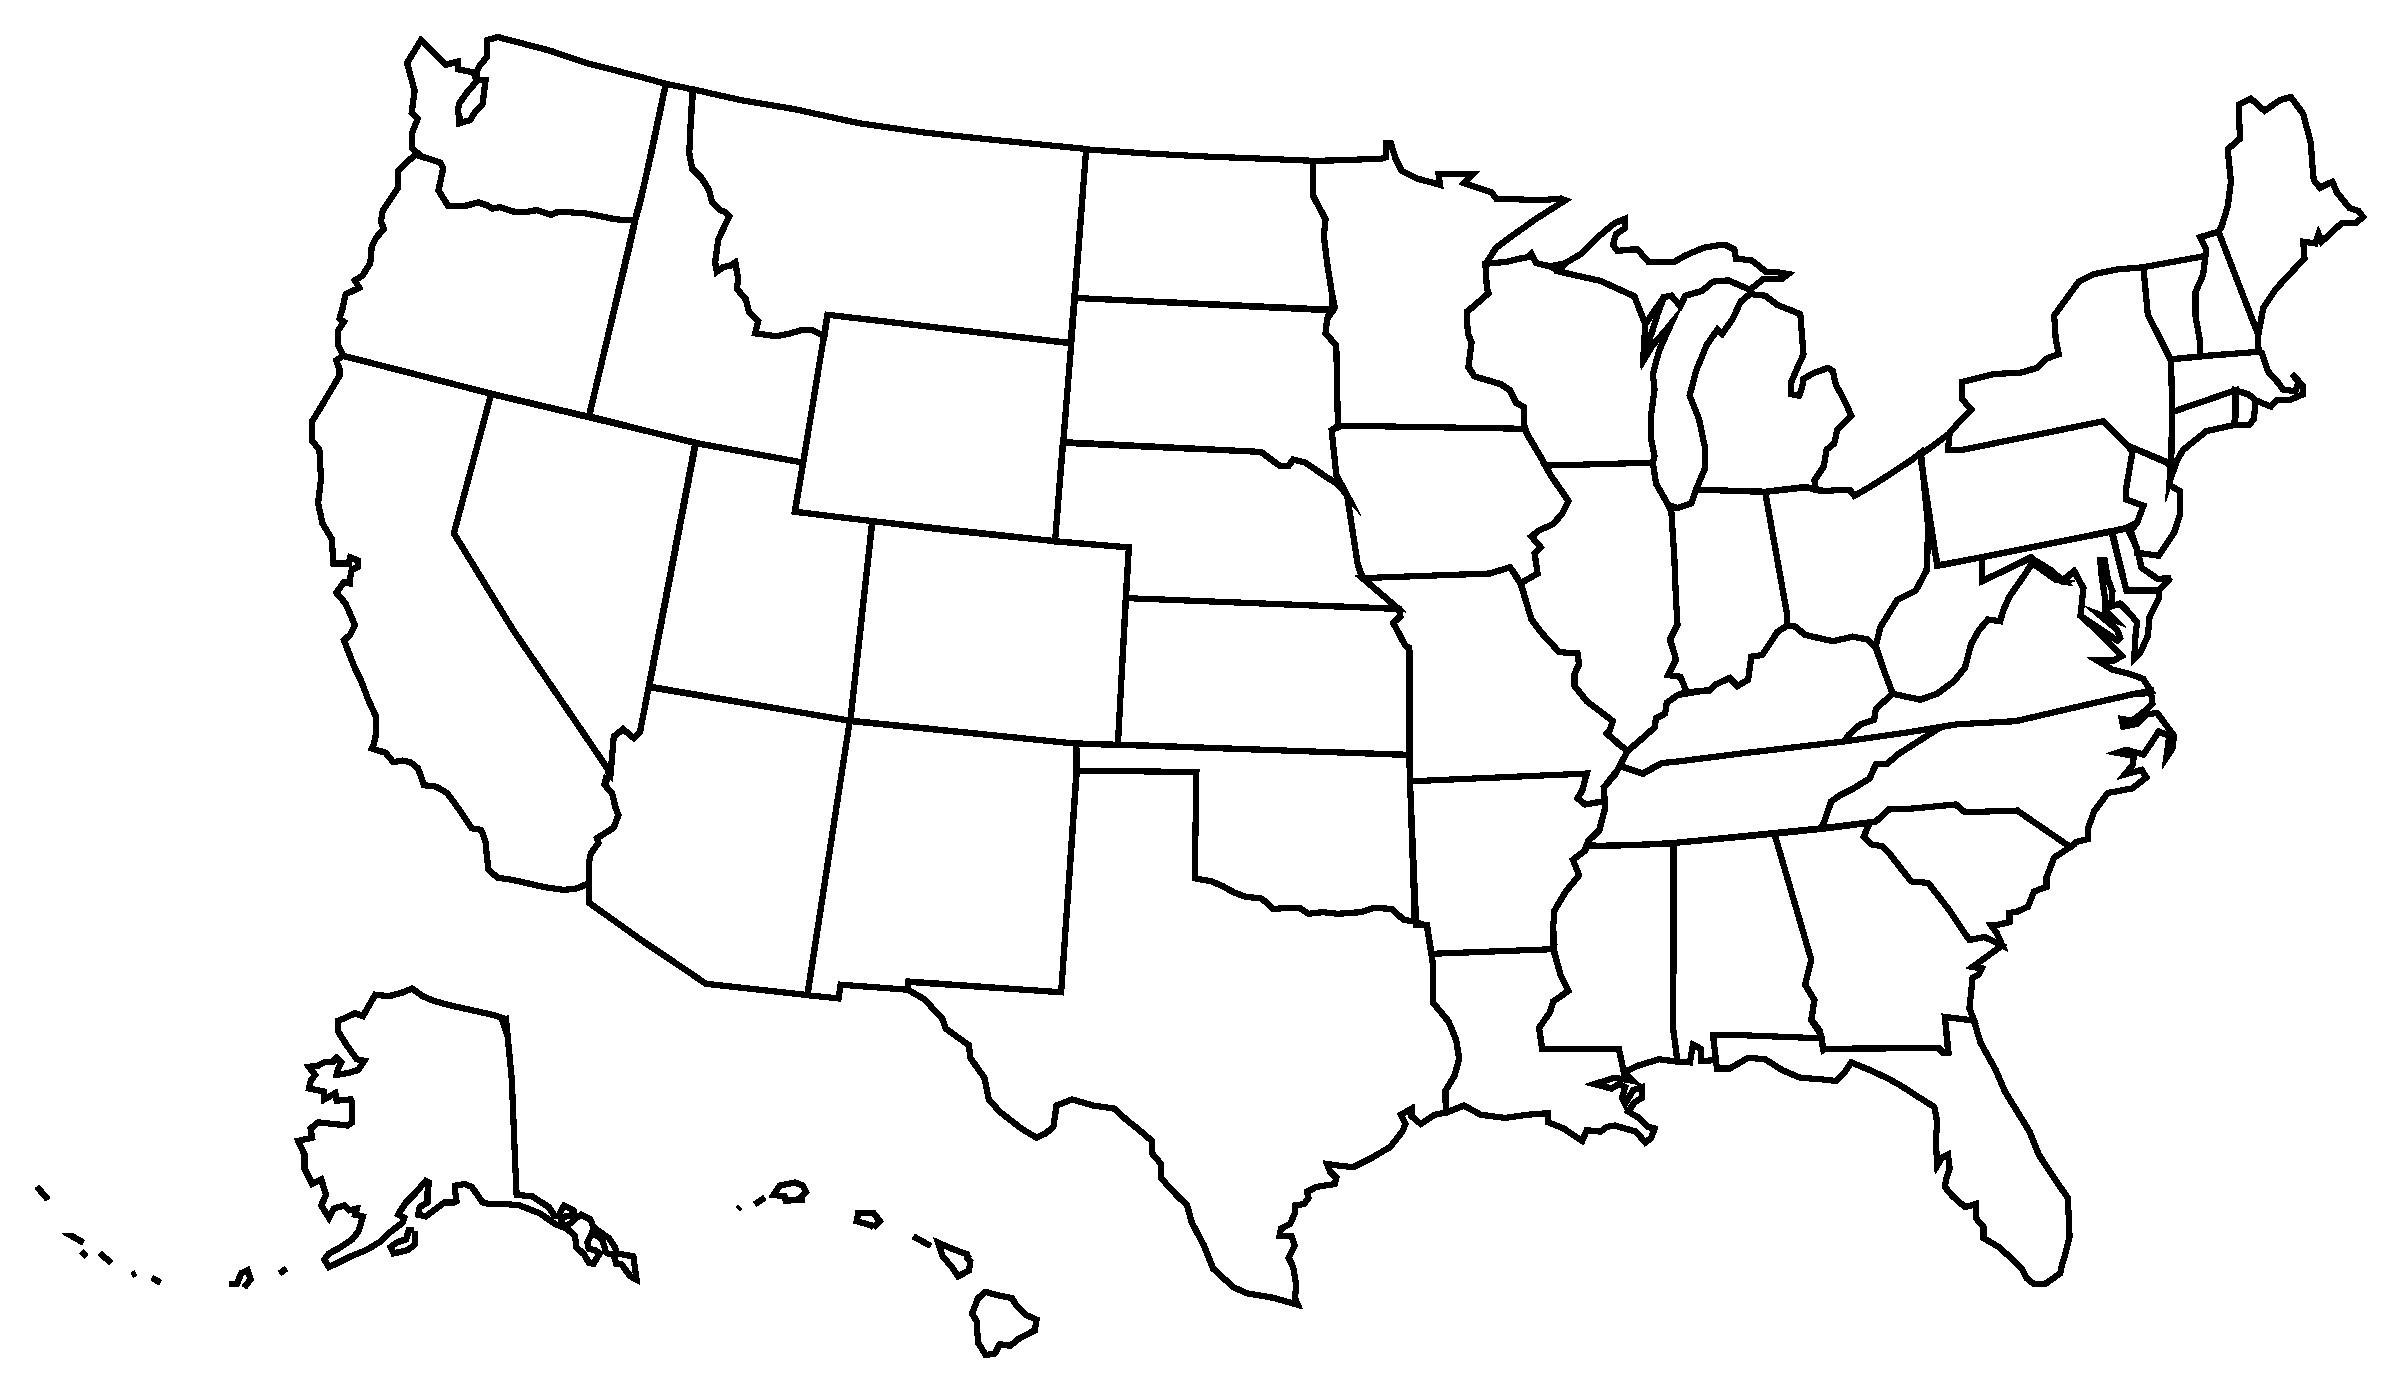 United states clipart blackline. Blank us state map